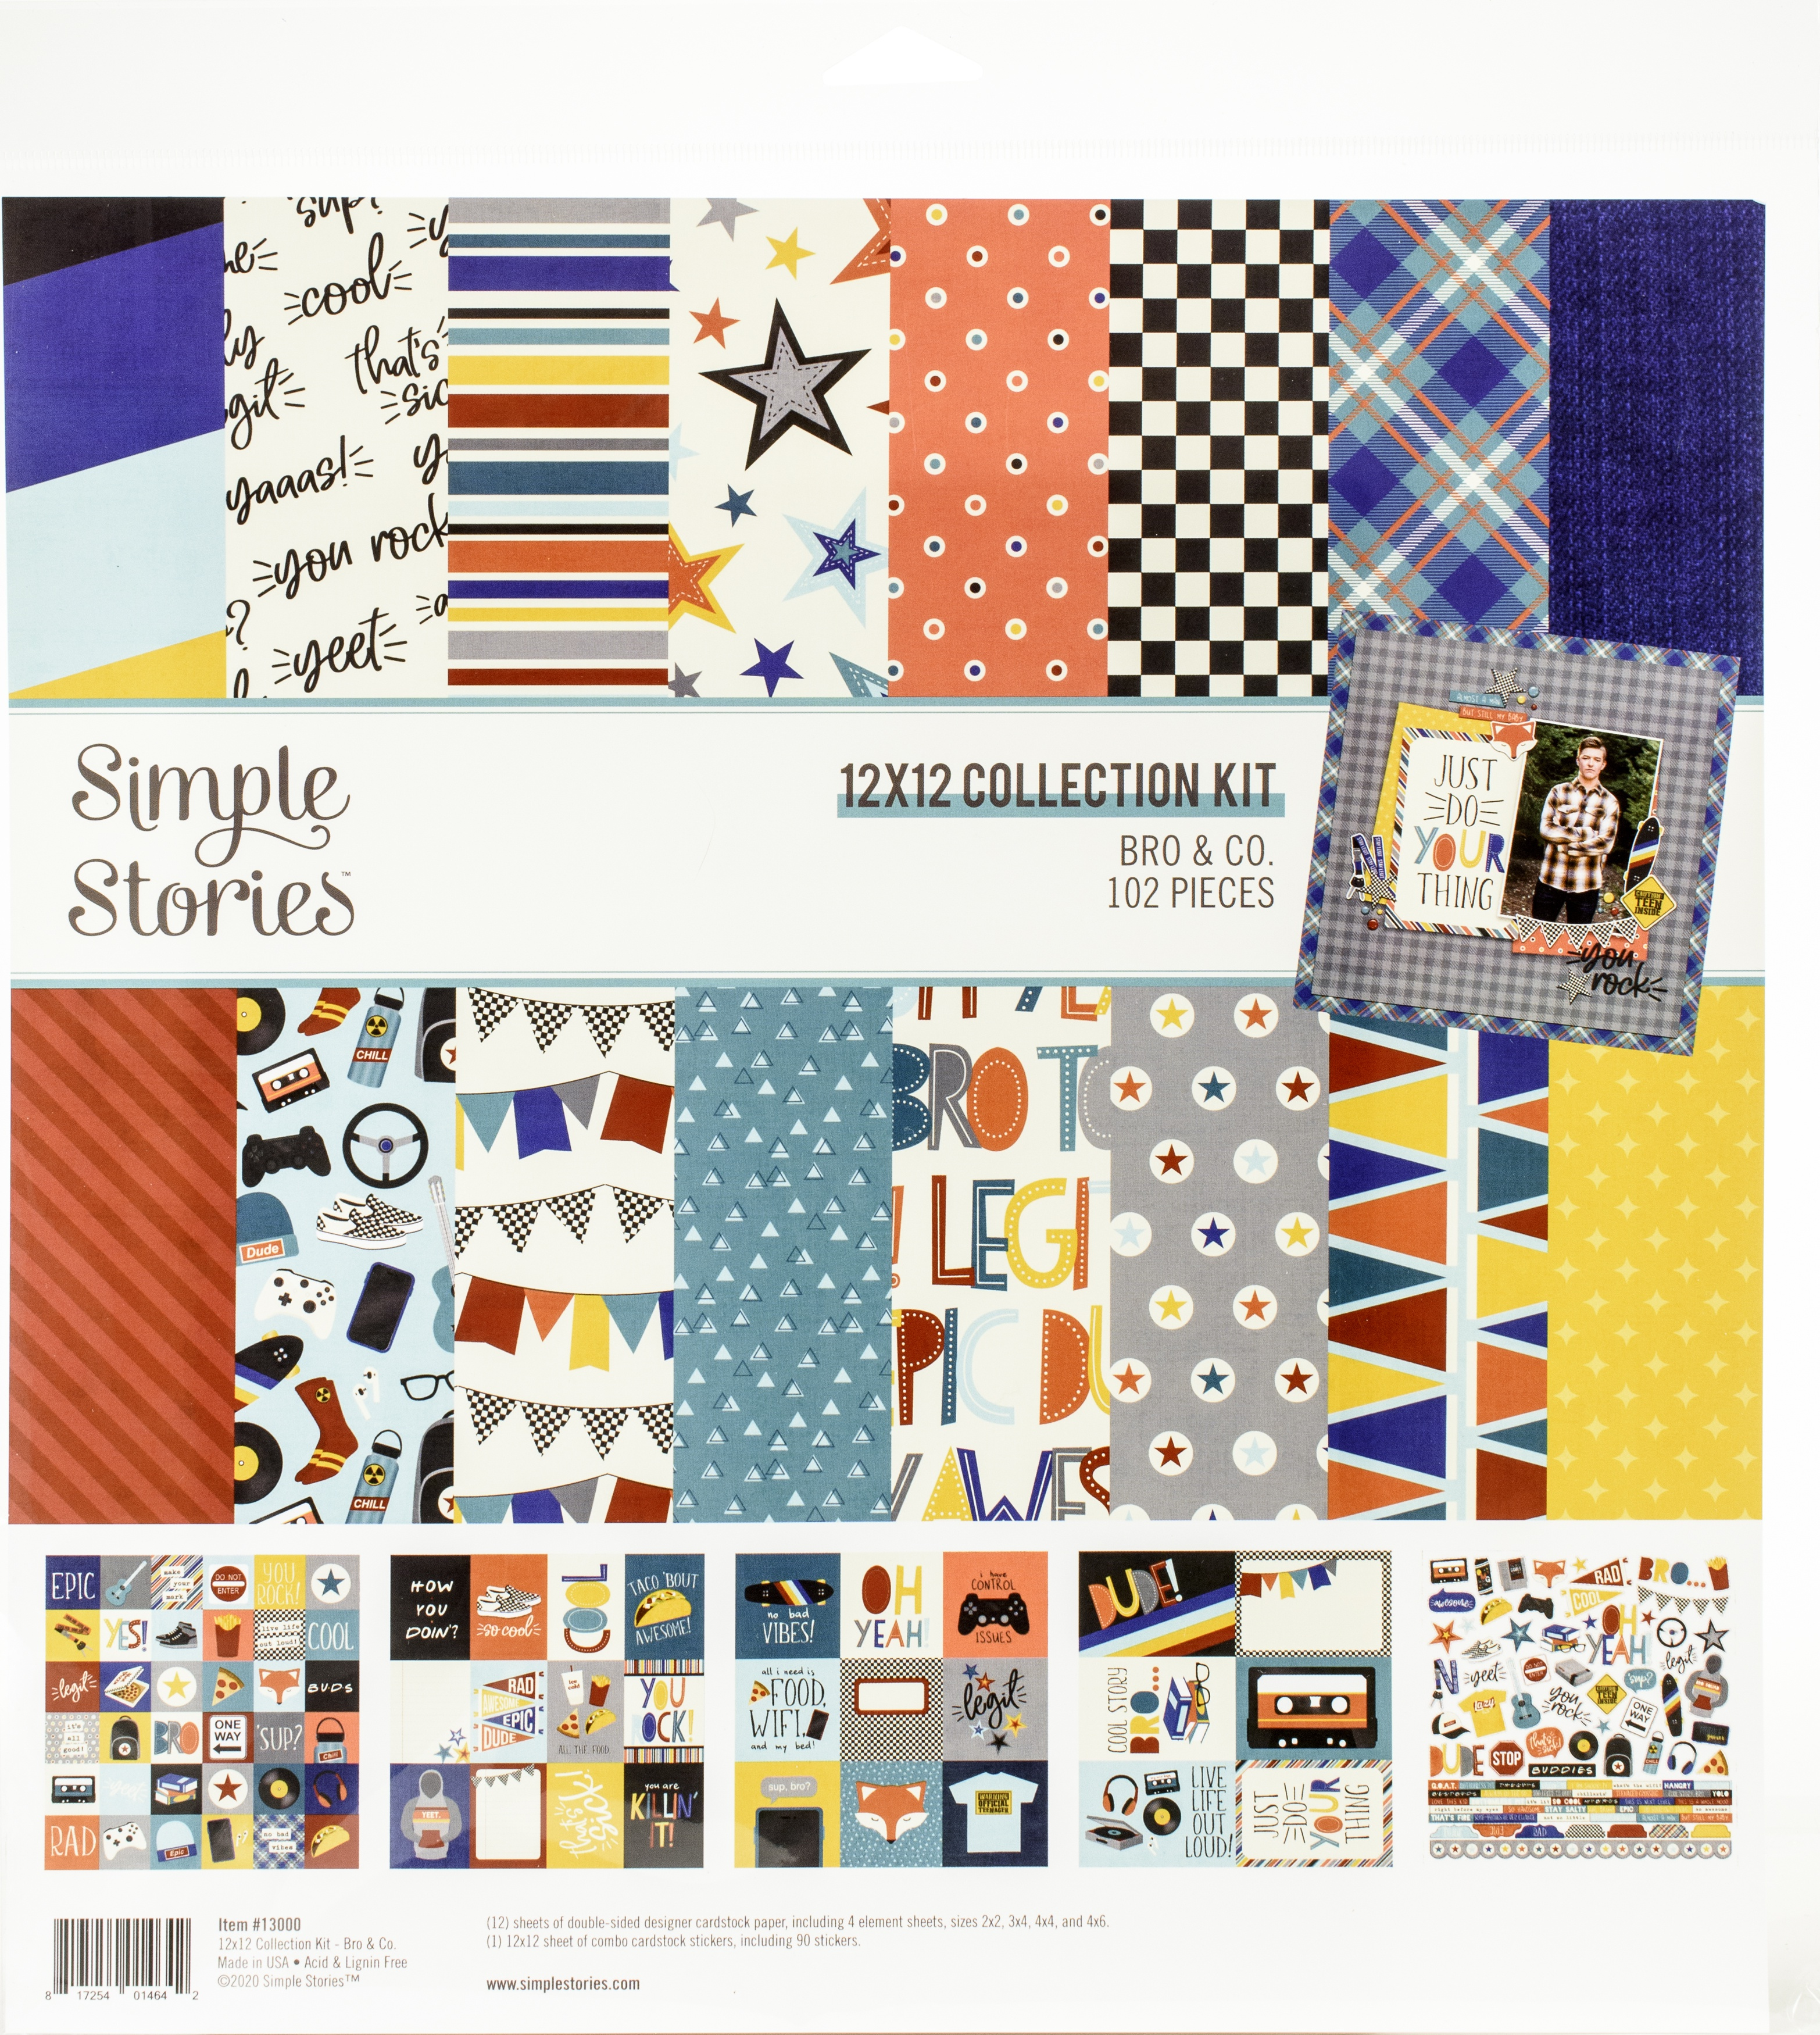 Bro & Co. Collection Kit 12X12 - Simple Stories